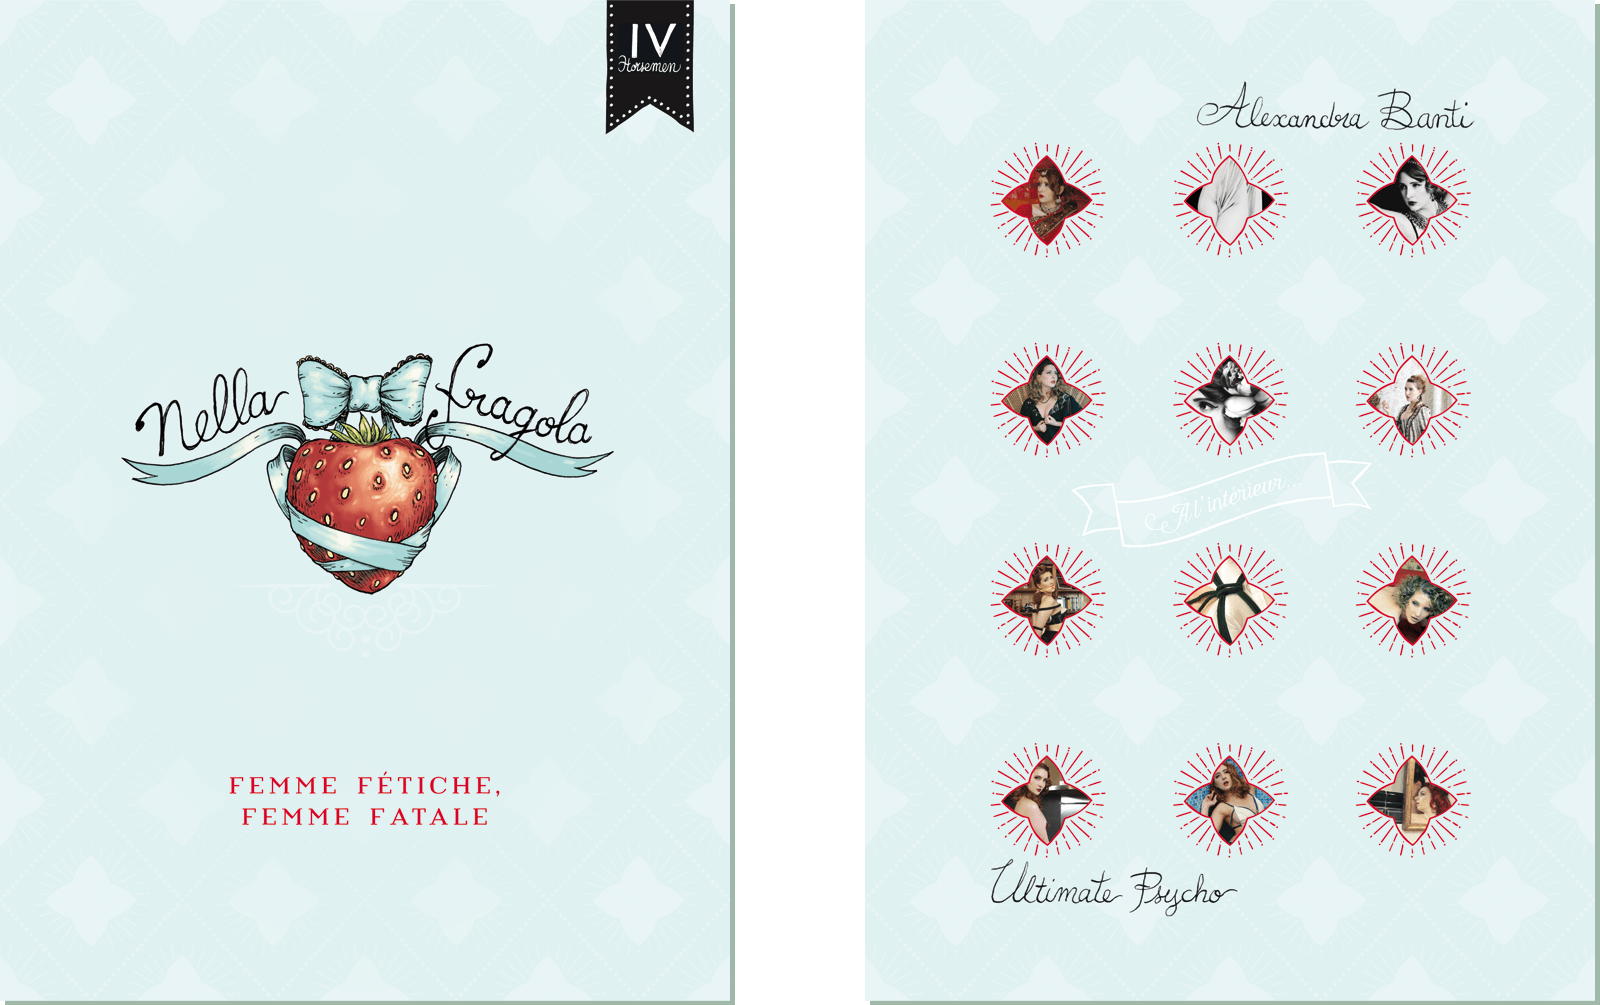 Nella Fragola Portfolio Folder Front and Back Cover, and base for her current visual identity.